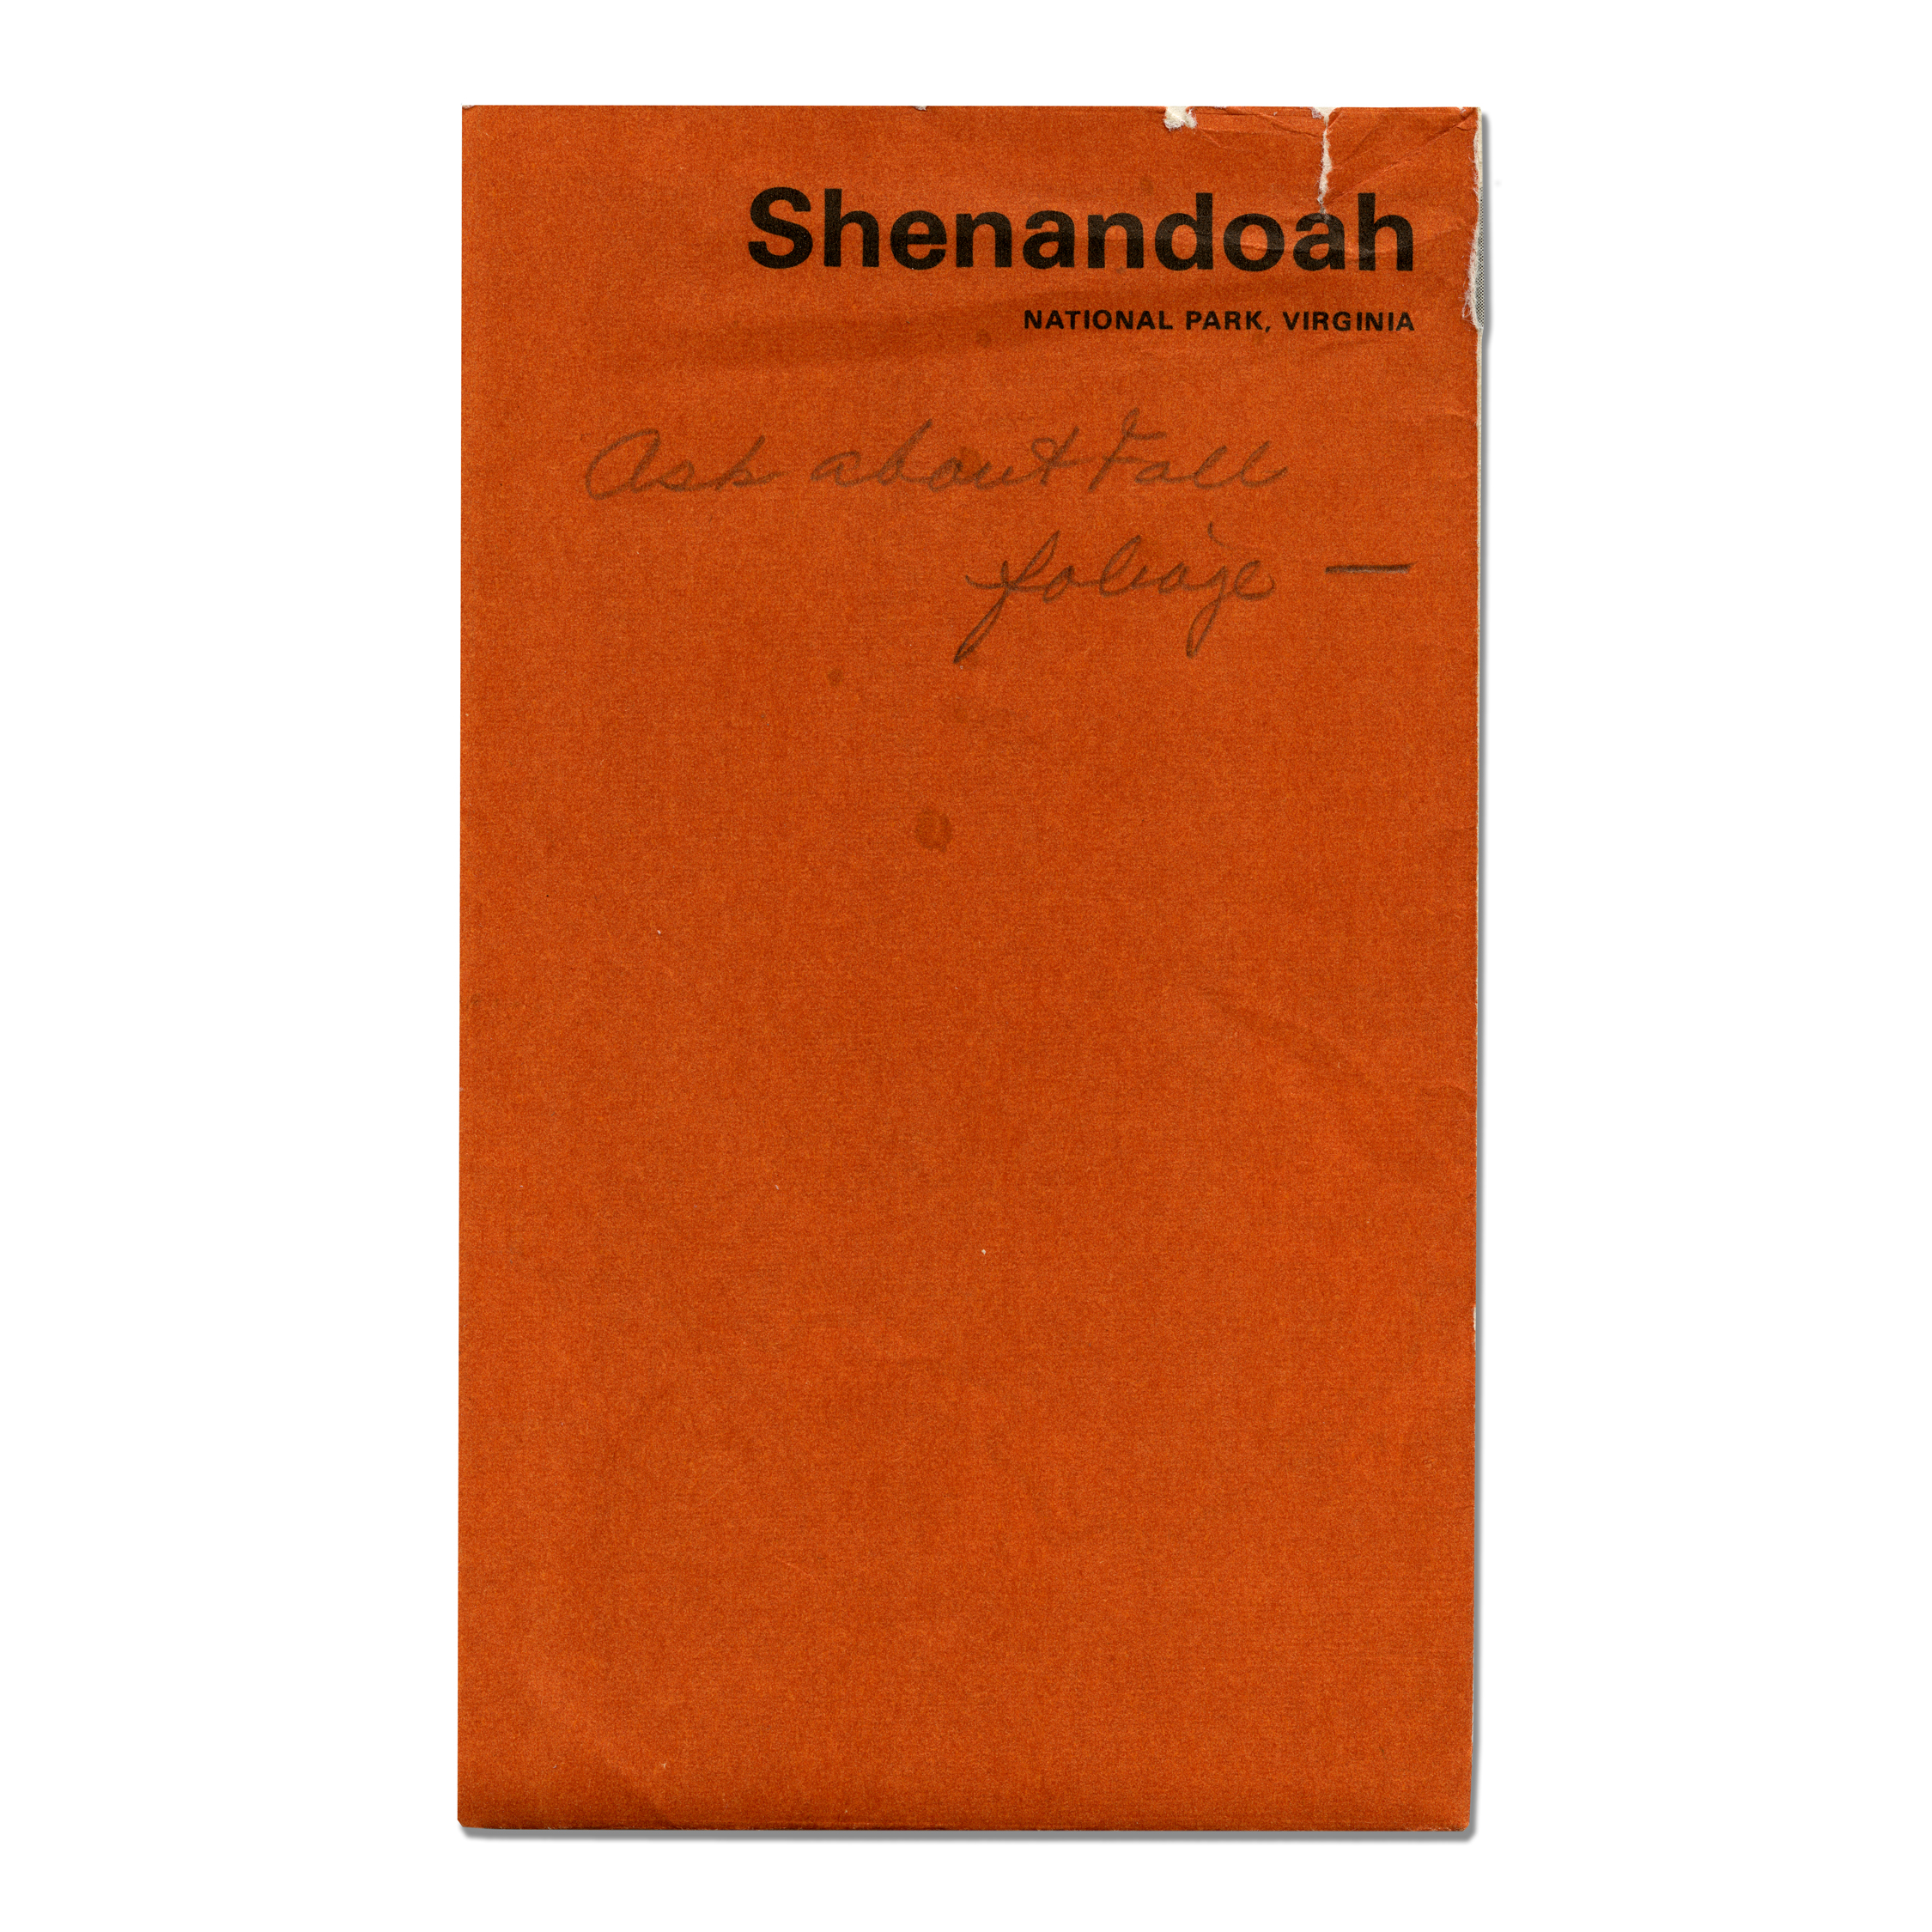 1968_shenandoah_national_park_brochure.jpg